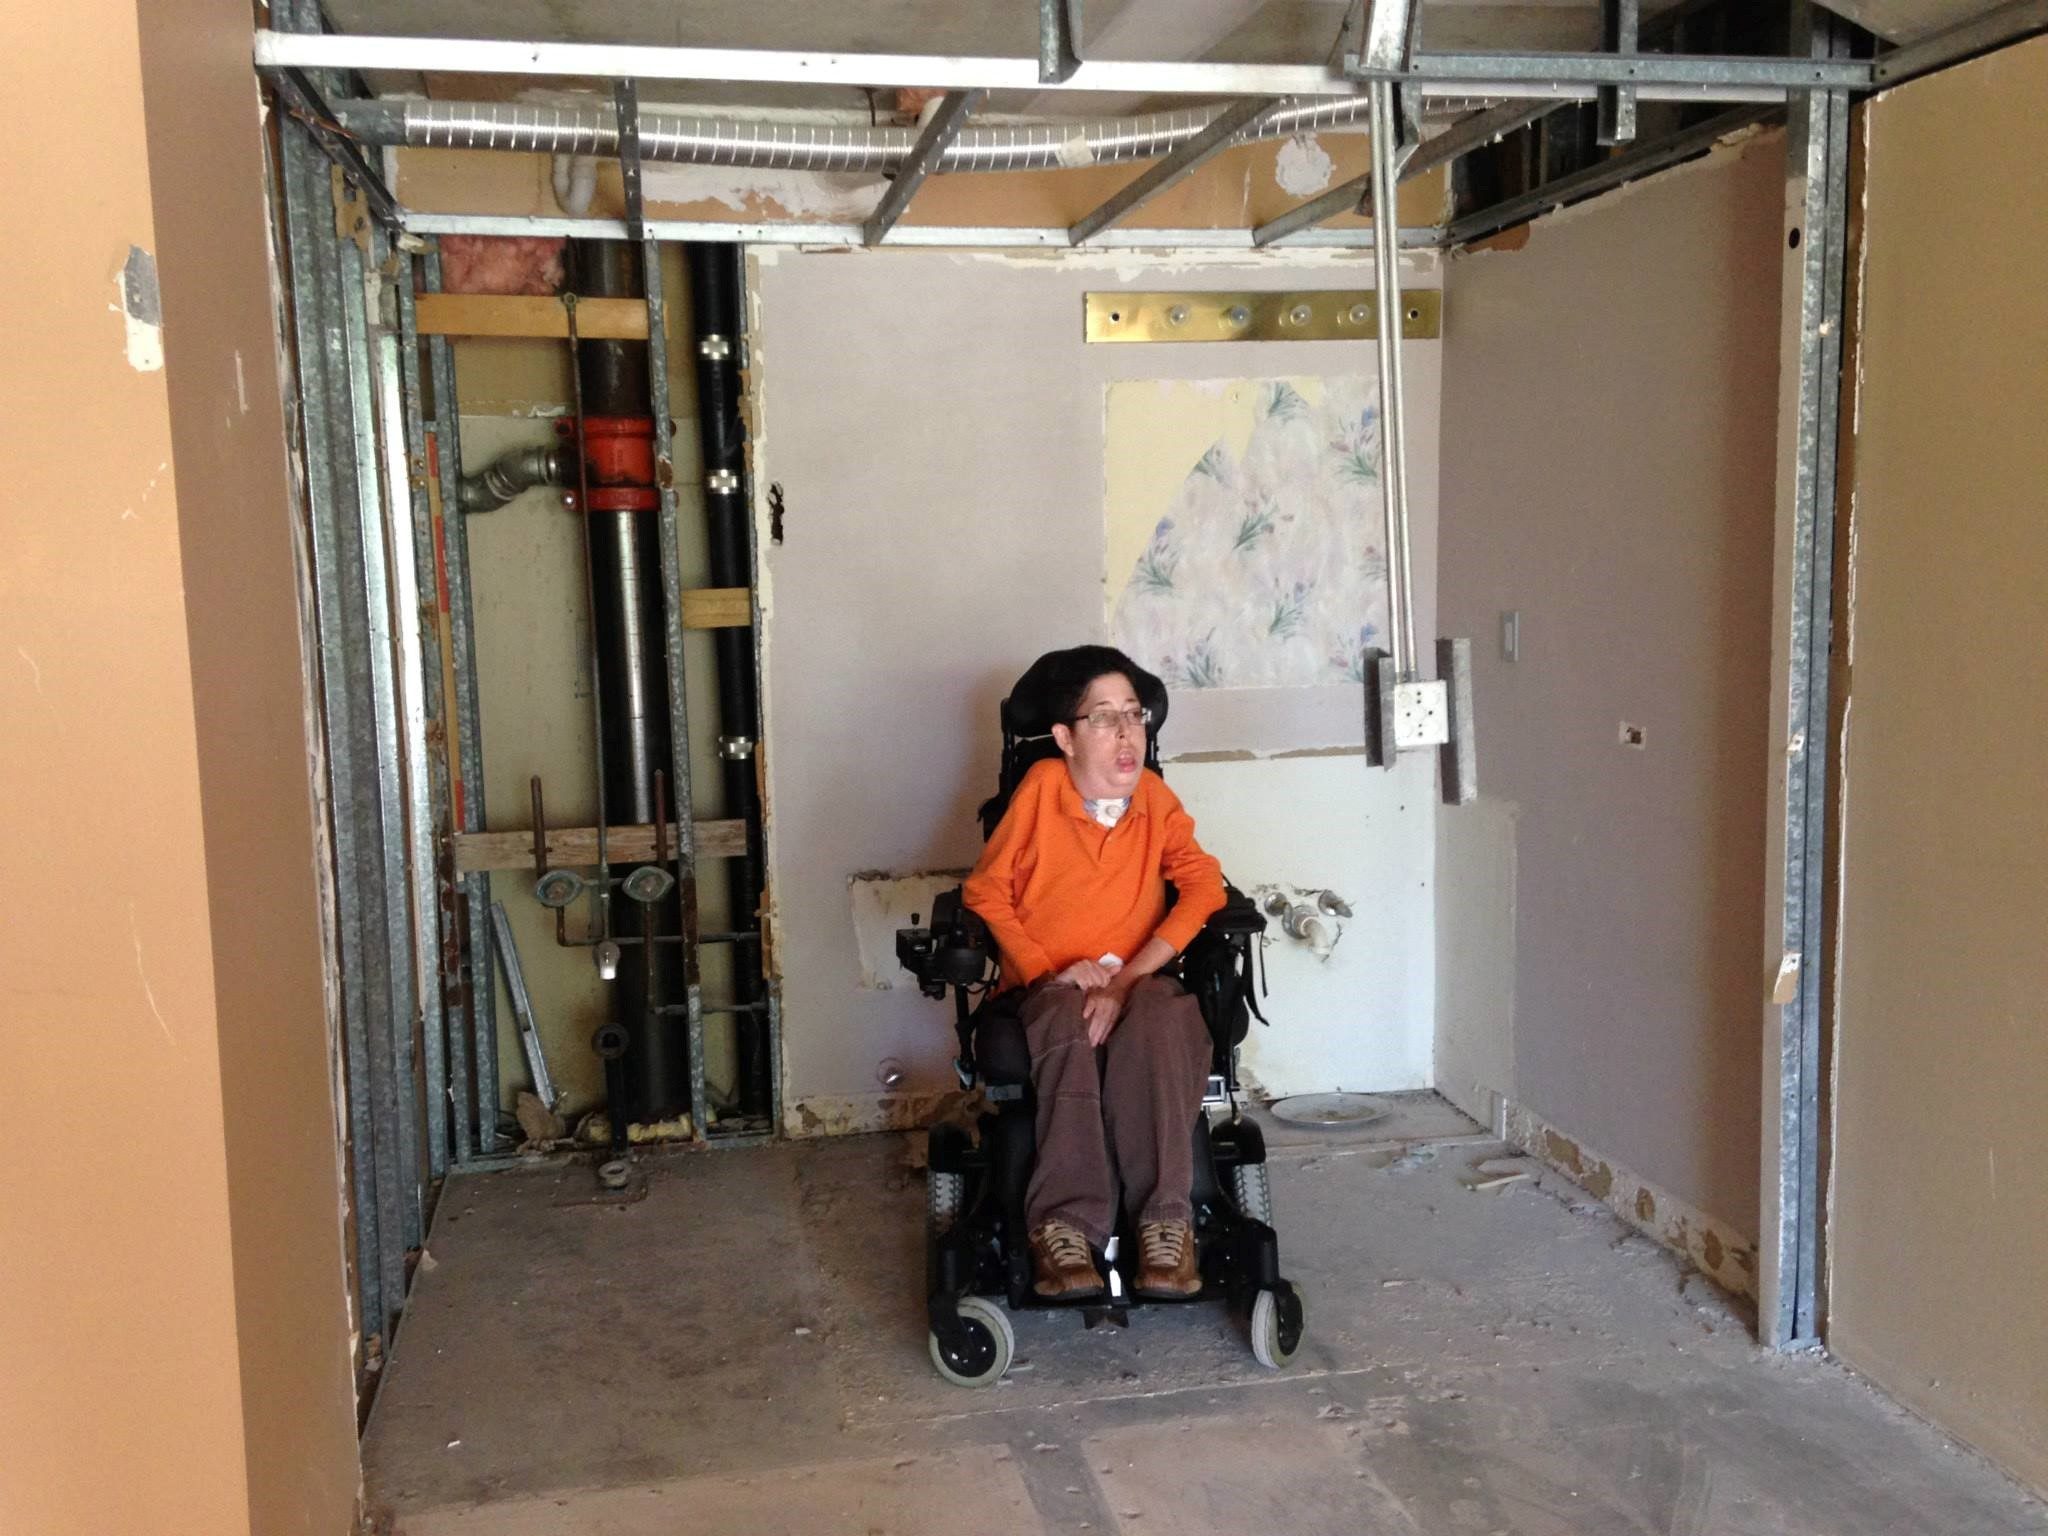 picture of Zachary Trautenberg in a motorized wheelchair in a home under constrution